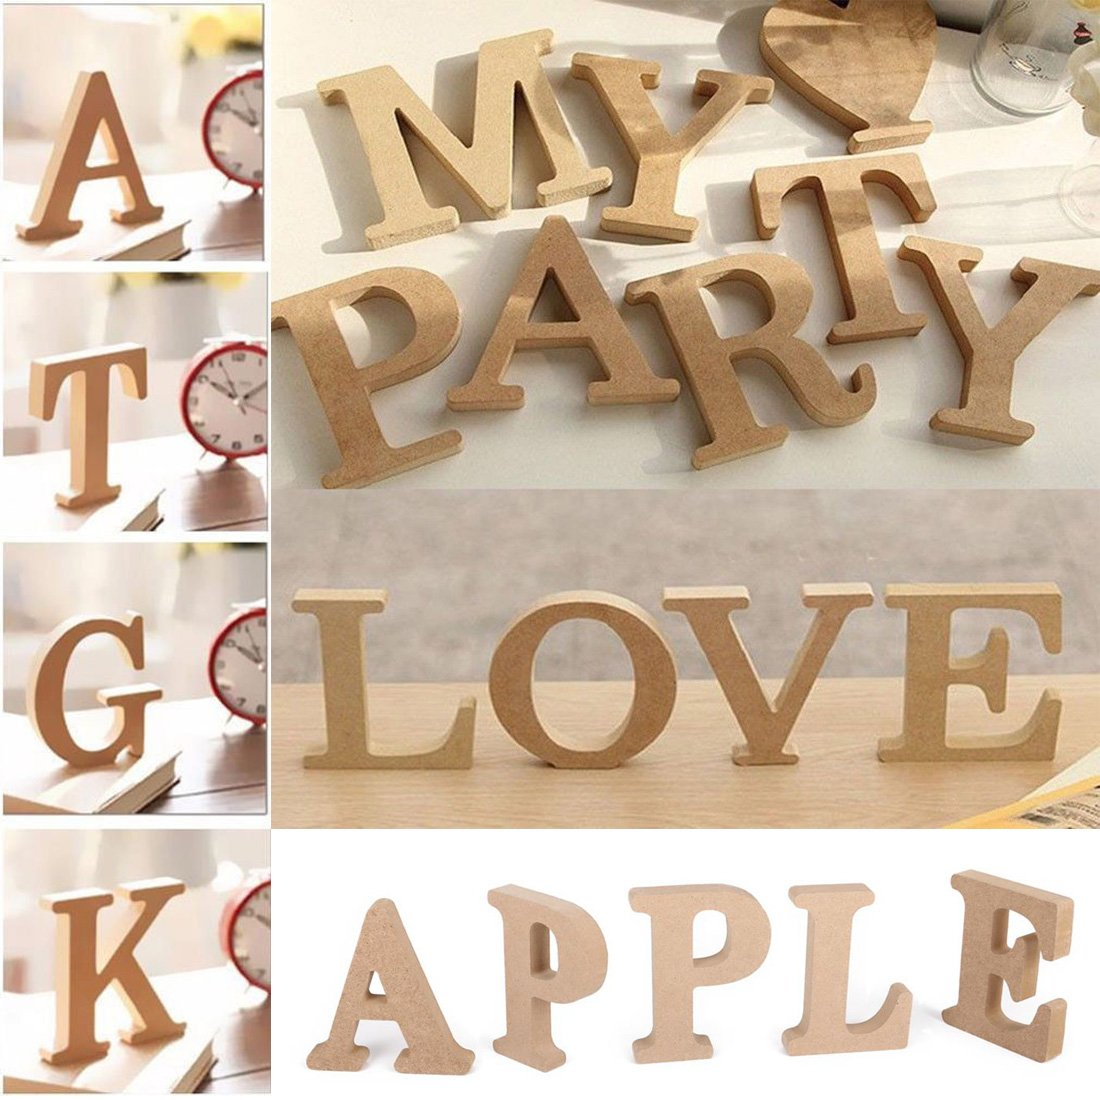 FUT_Forever 26 Larege A-Z Wooden Alphabet Ornaments Crafts Letters Hanging Wall Letters Decorative for Bedroom Wedding Birthday Party Home